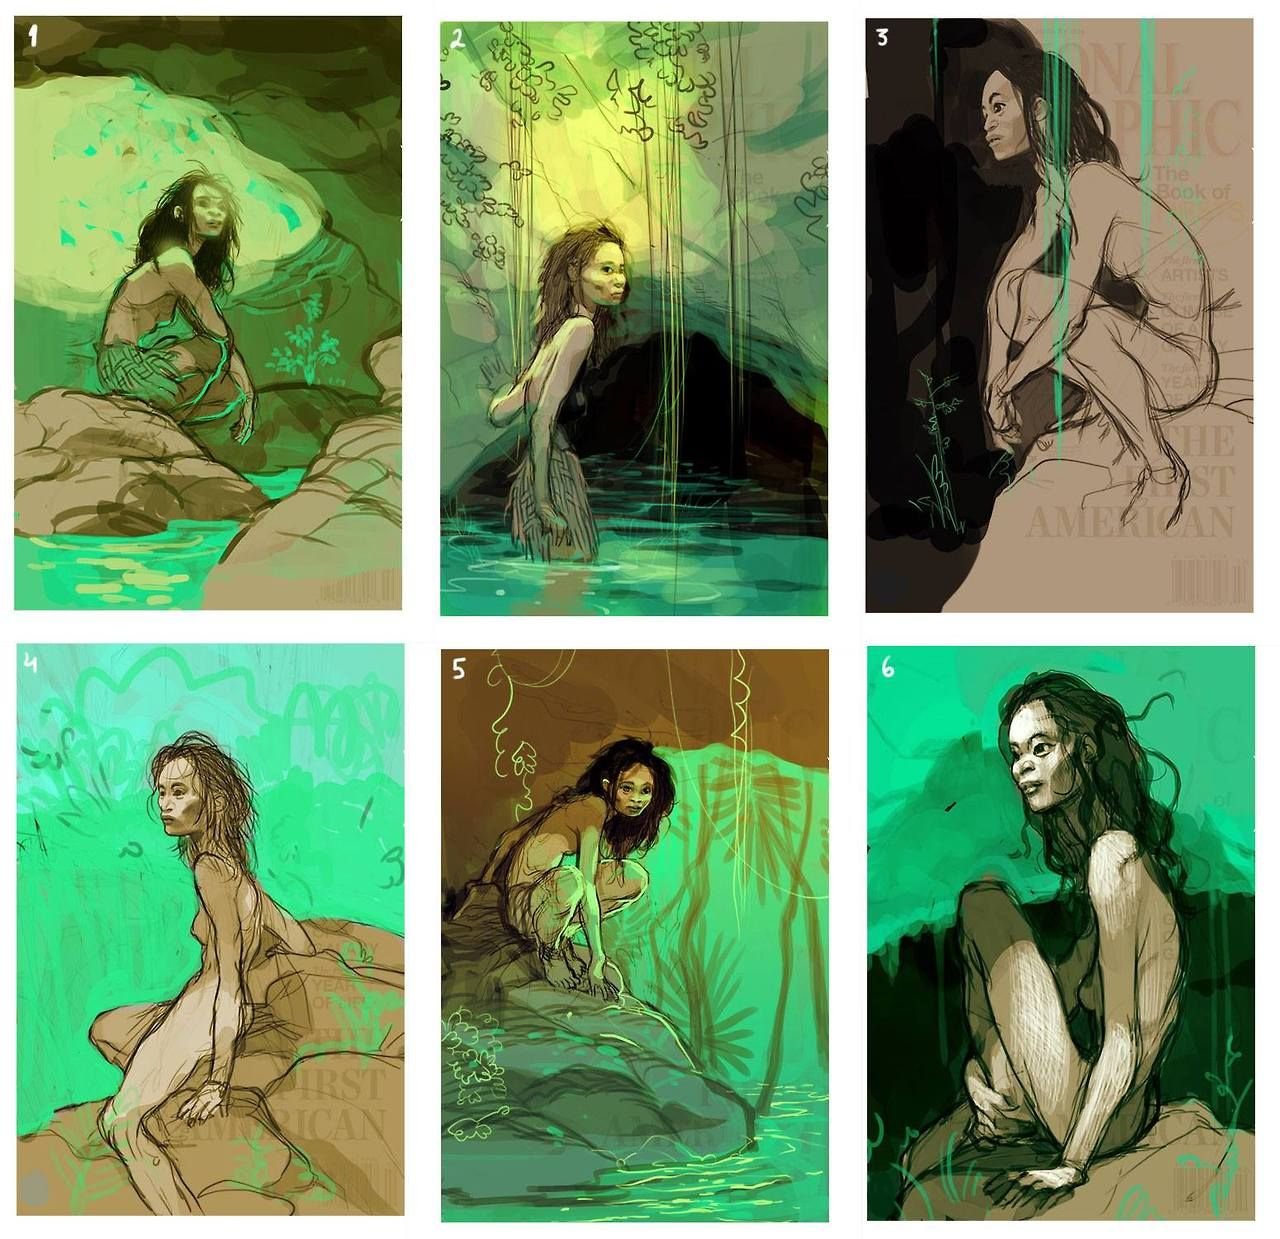 The National Geographic - Naia: The First American by Tomer Hanuka *